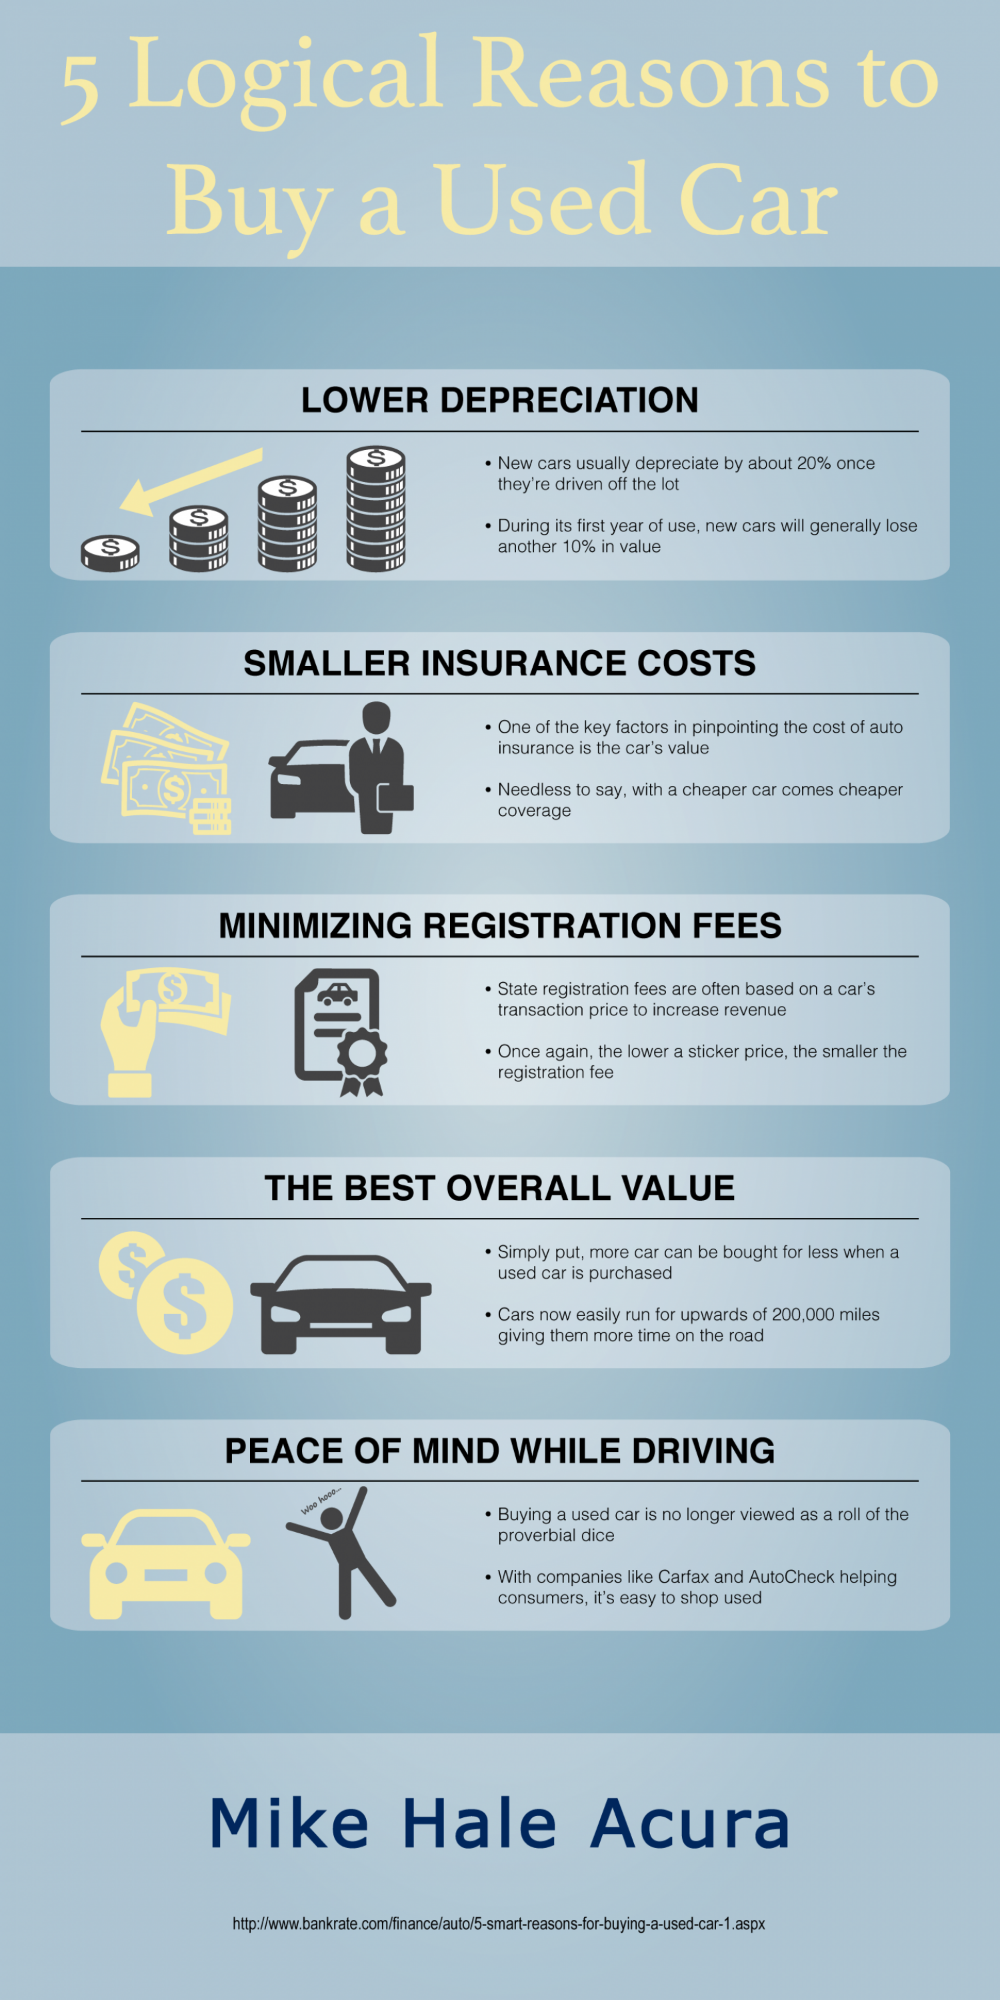 5 Logical Reasons To Buy A Used Car Visual Ly Buy Used Cars Used Cars Car Sharing